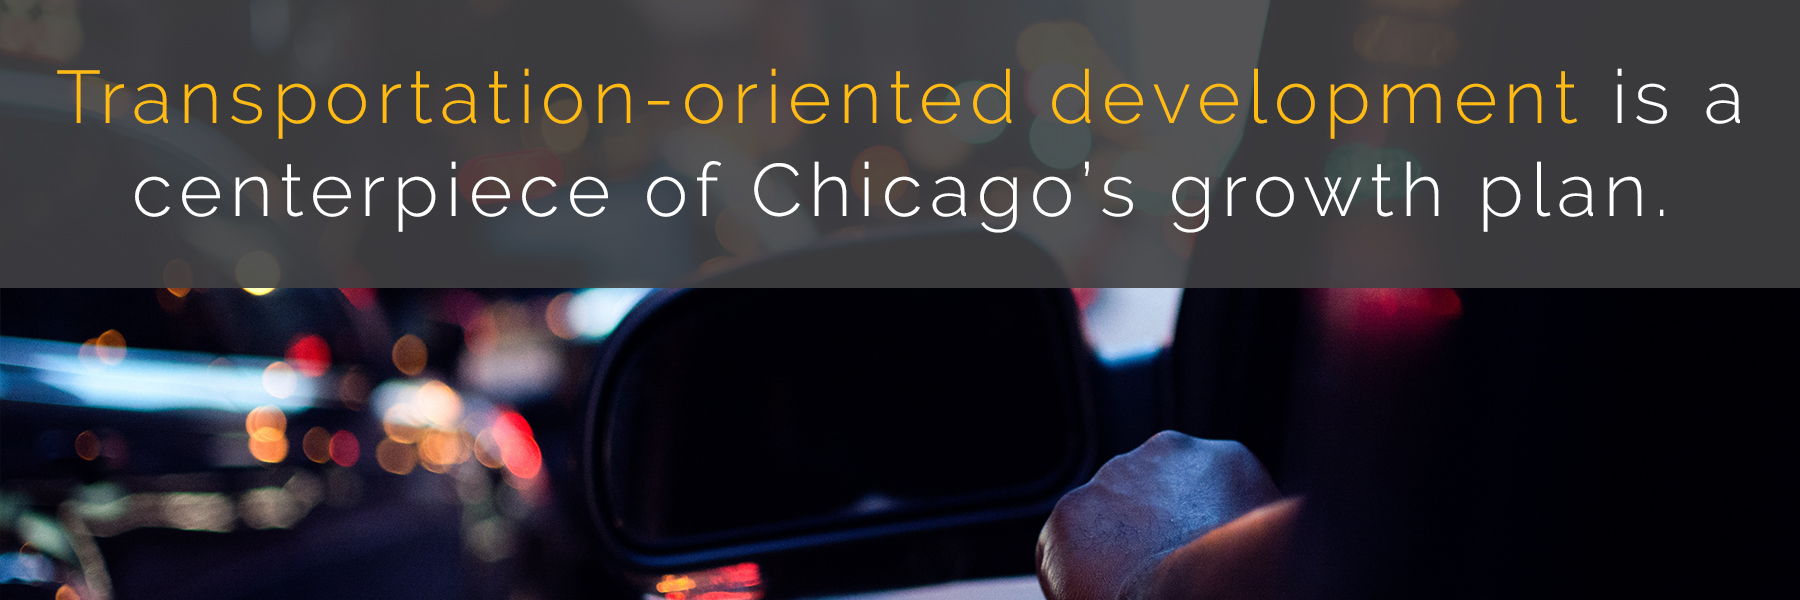 Transportation-oriented development is a centerpiece of Chicago's growth plan